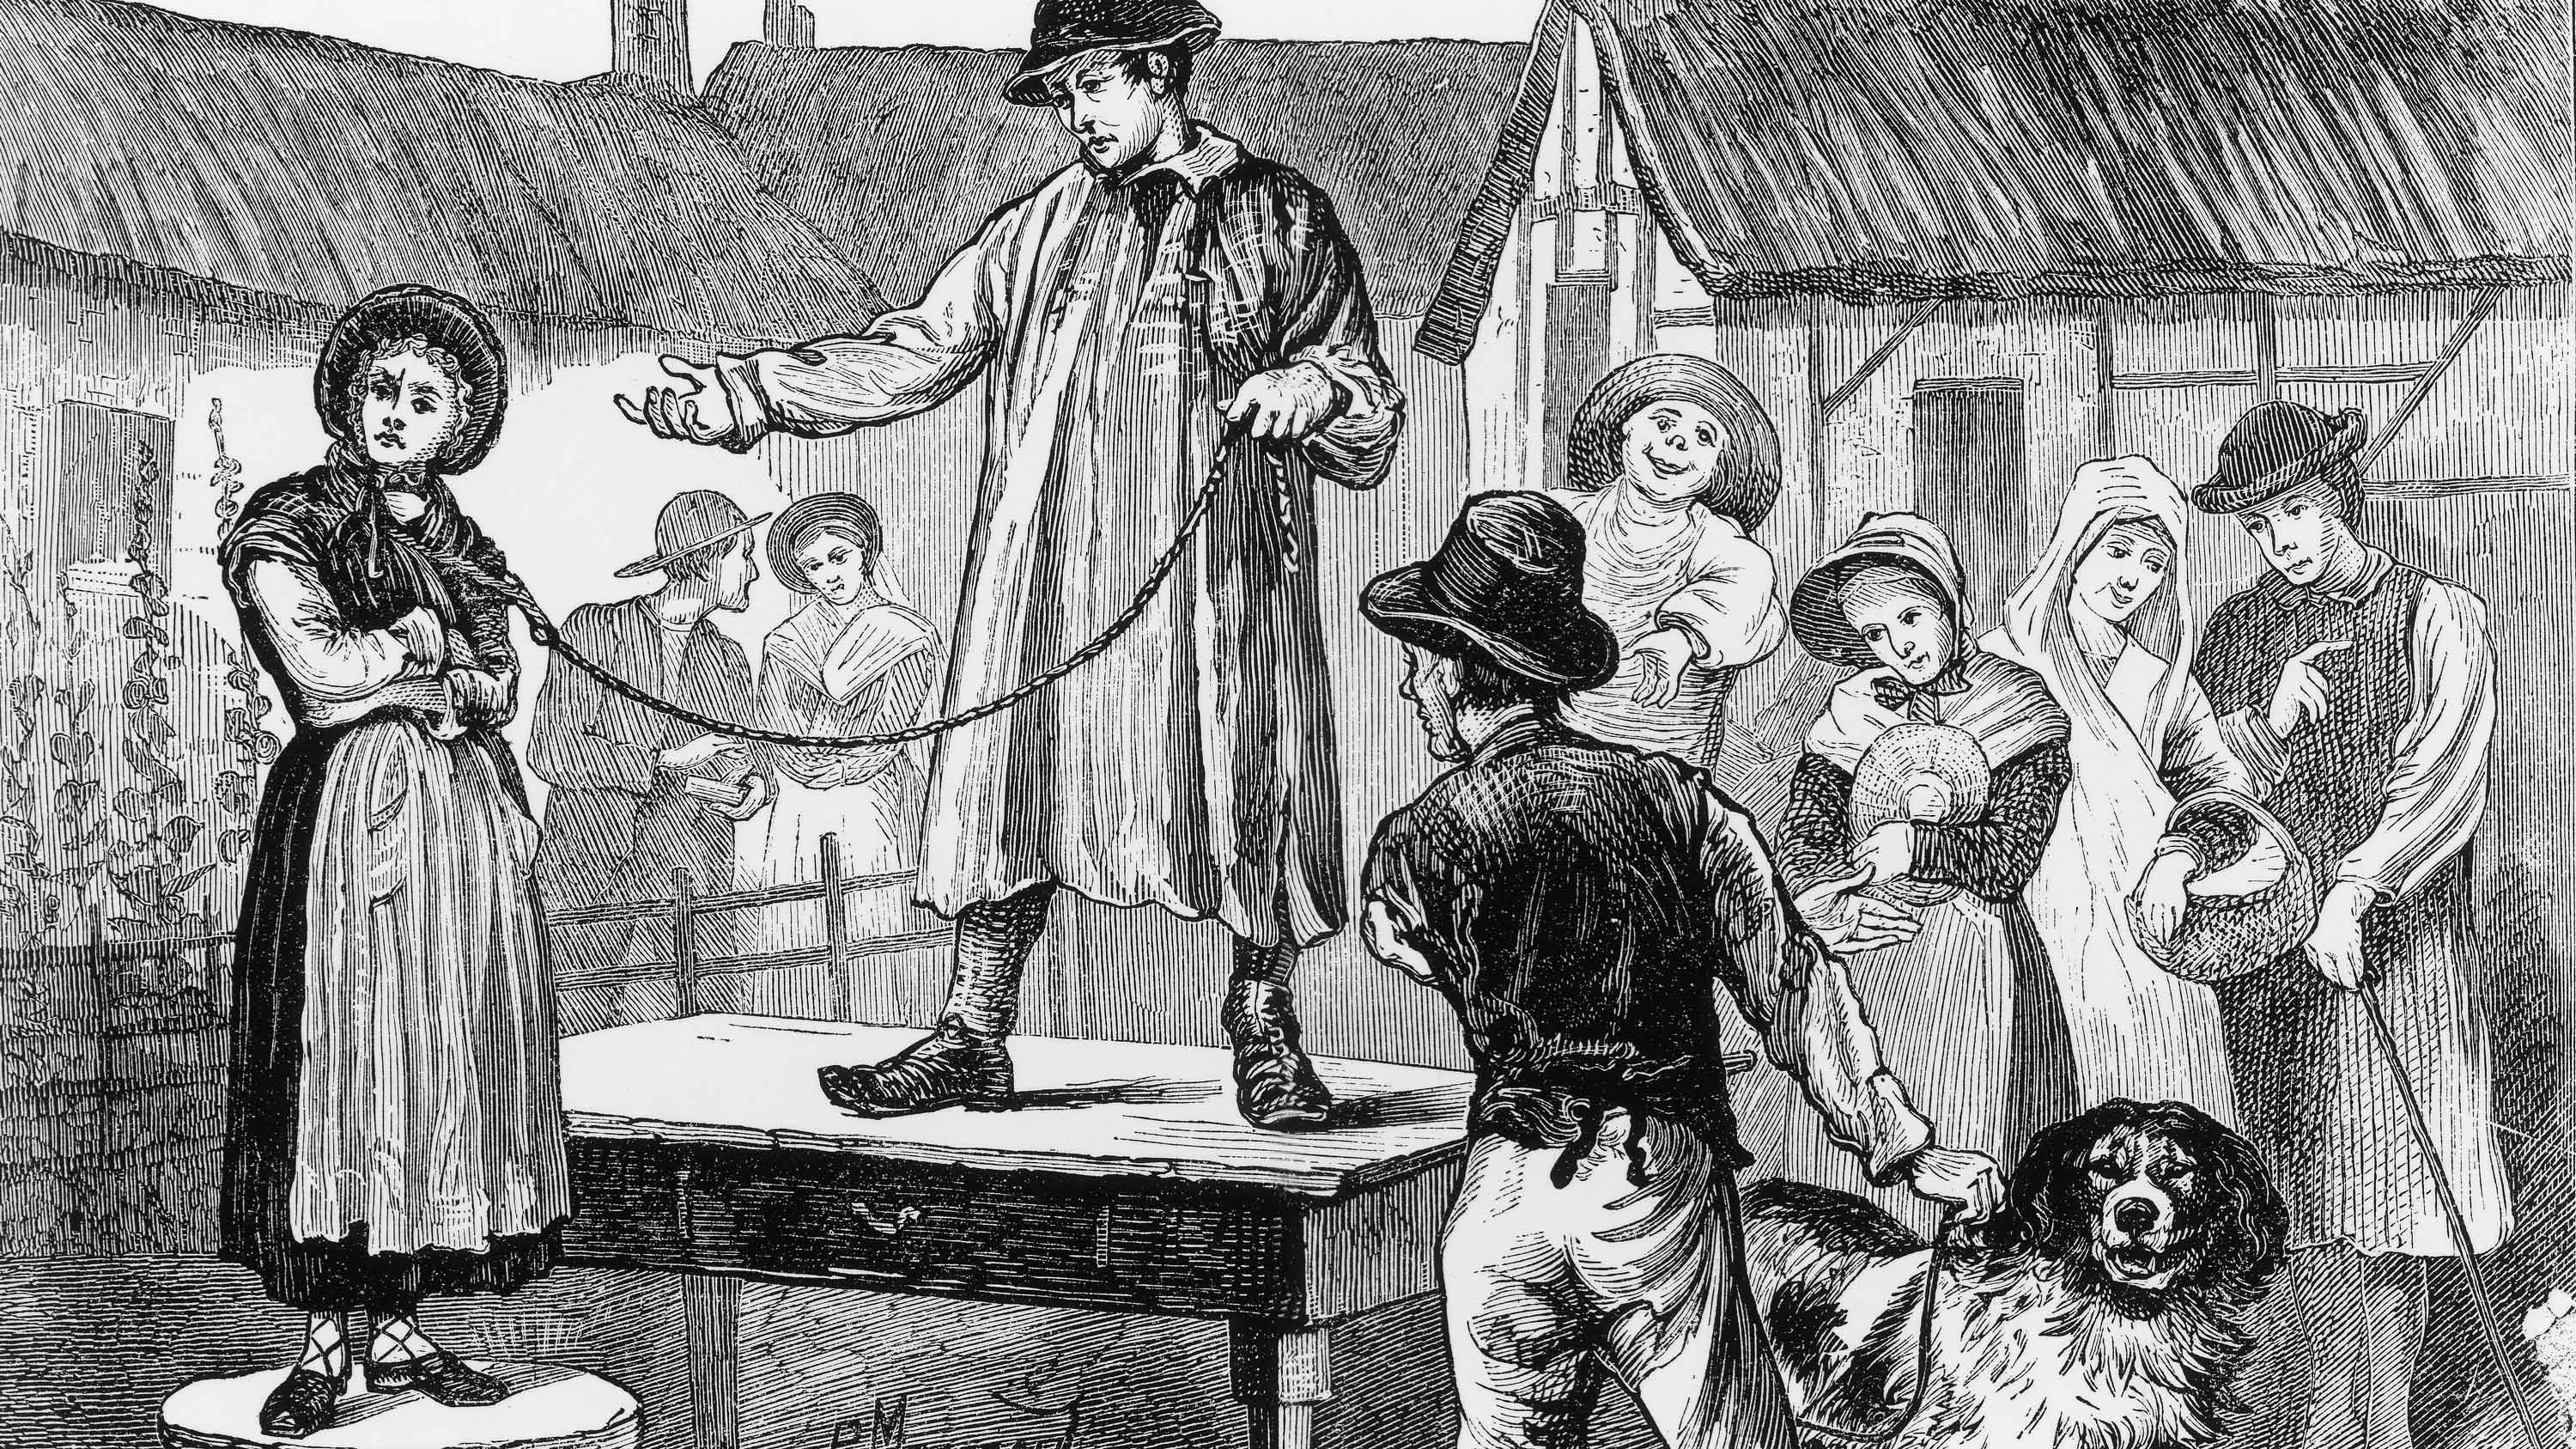 English Men Once Sold Their Wives Instead of Getting Divorced - HISTORY